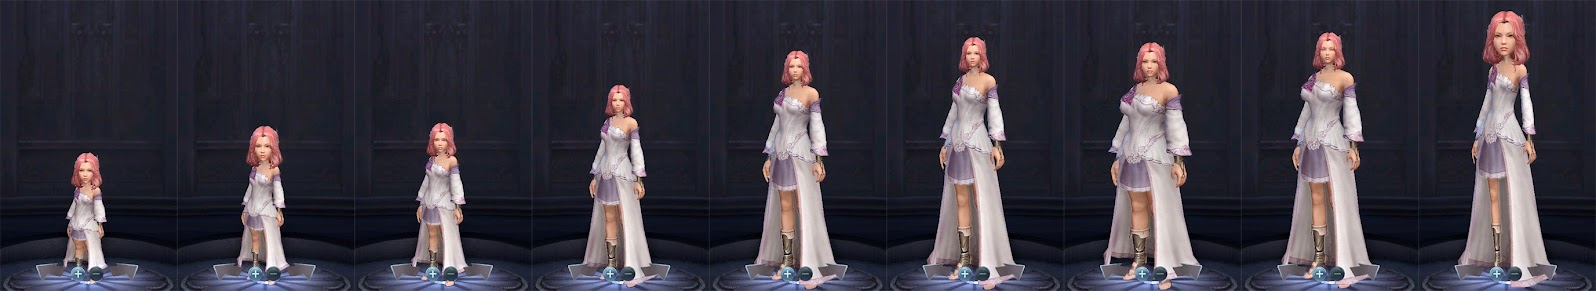 Aion Female Physique